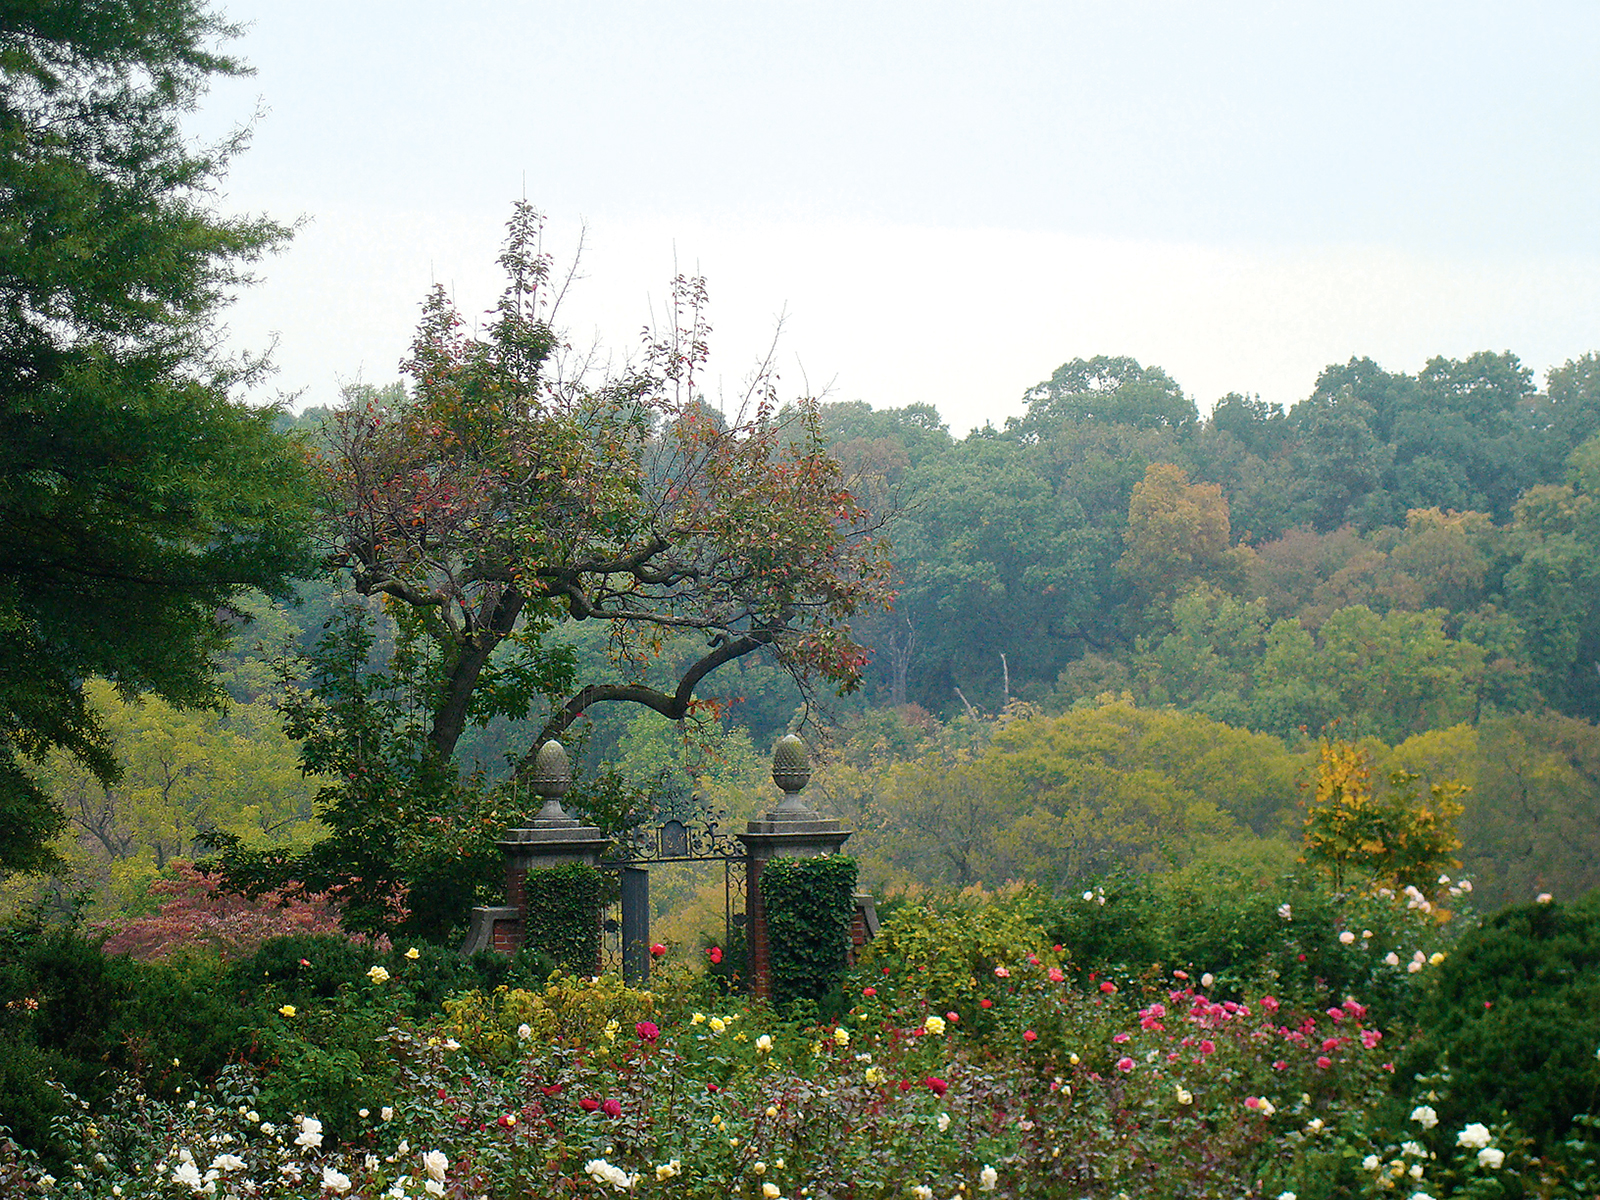 You can wander the gardens at Dumbarton Oaks year-round. Photograph Courtesy of Dumbarton Oaks.